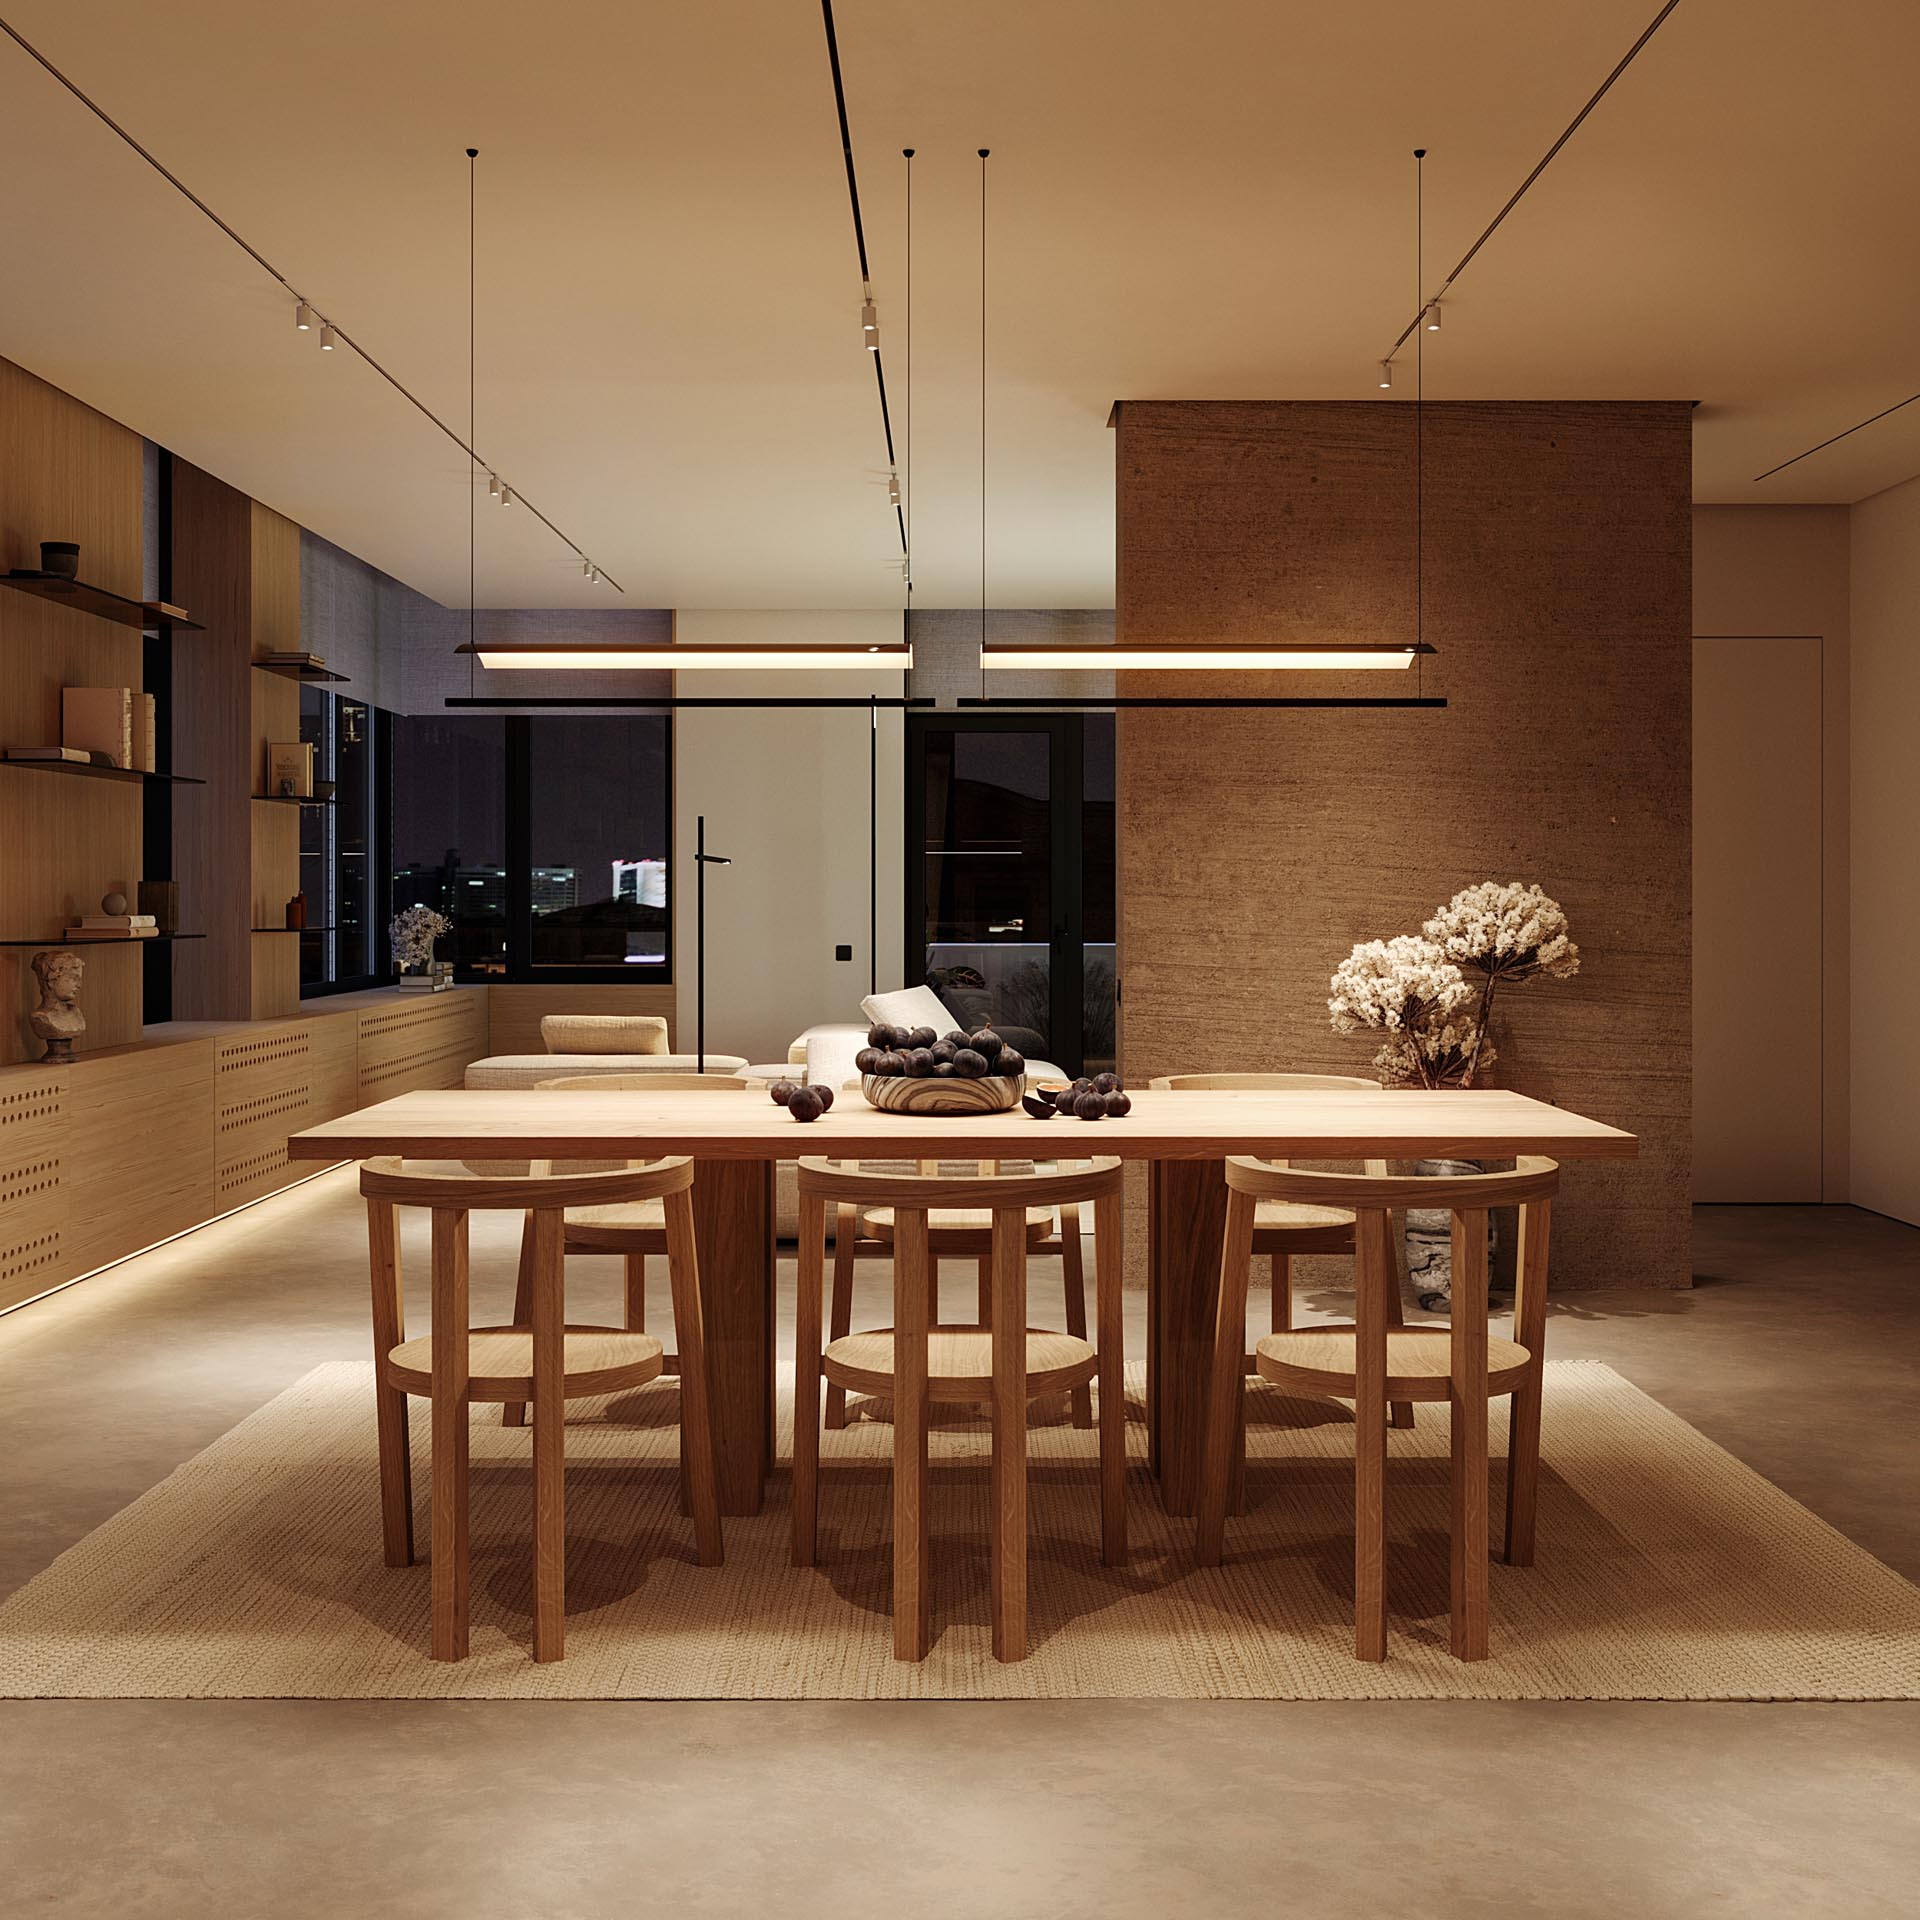 A modern open plan living room with a wood table and matching chairs.